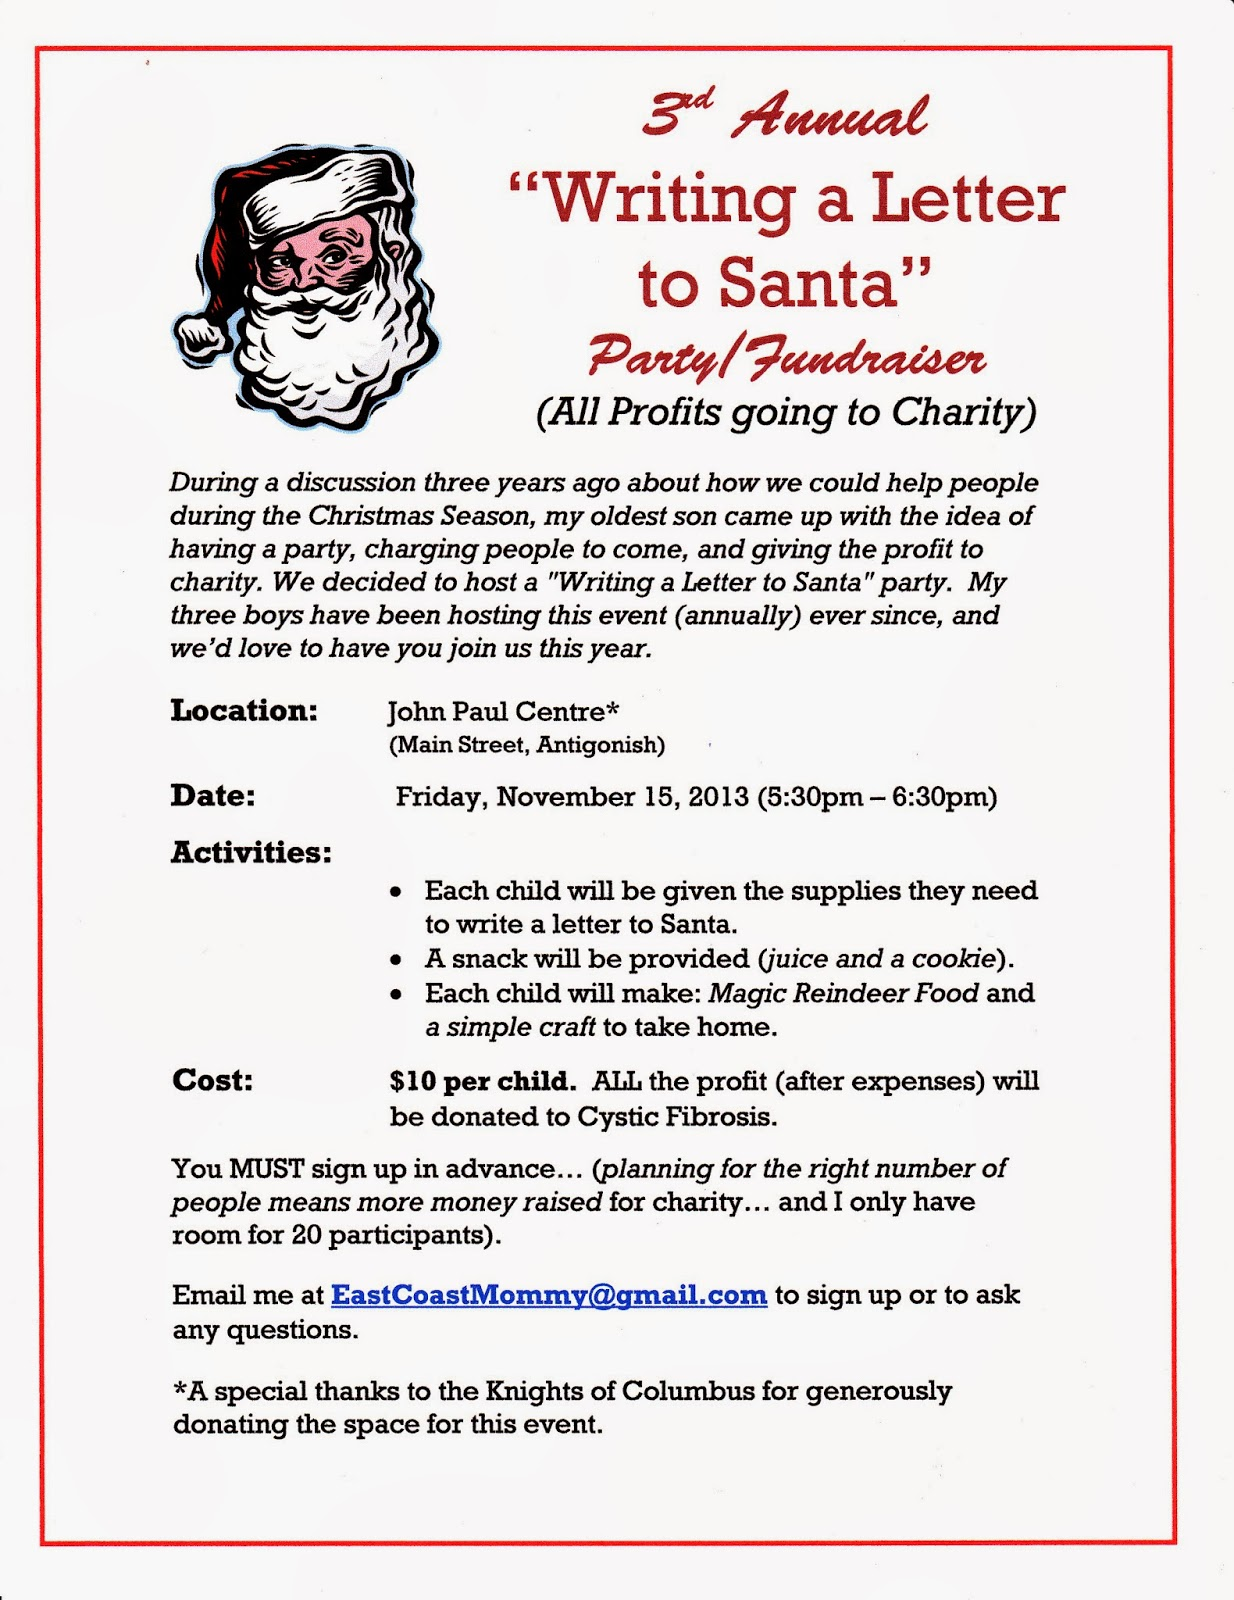 letters to santa fundraiser east coast november 2013 18967 | poster